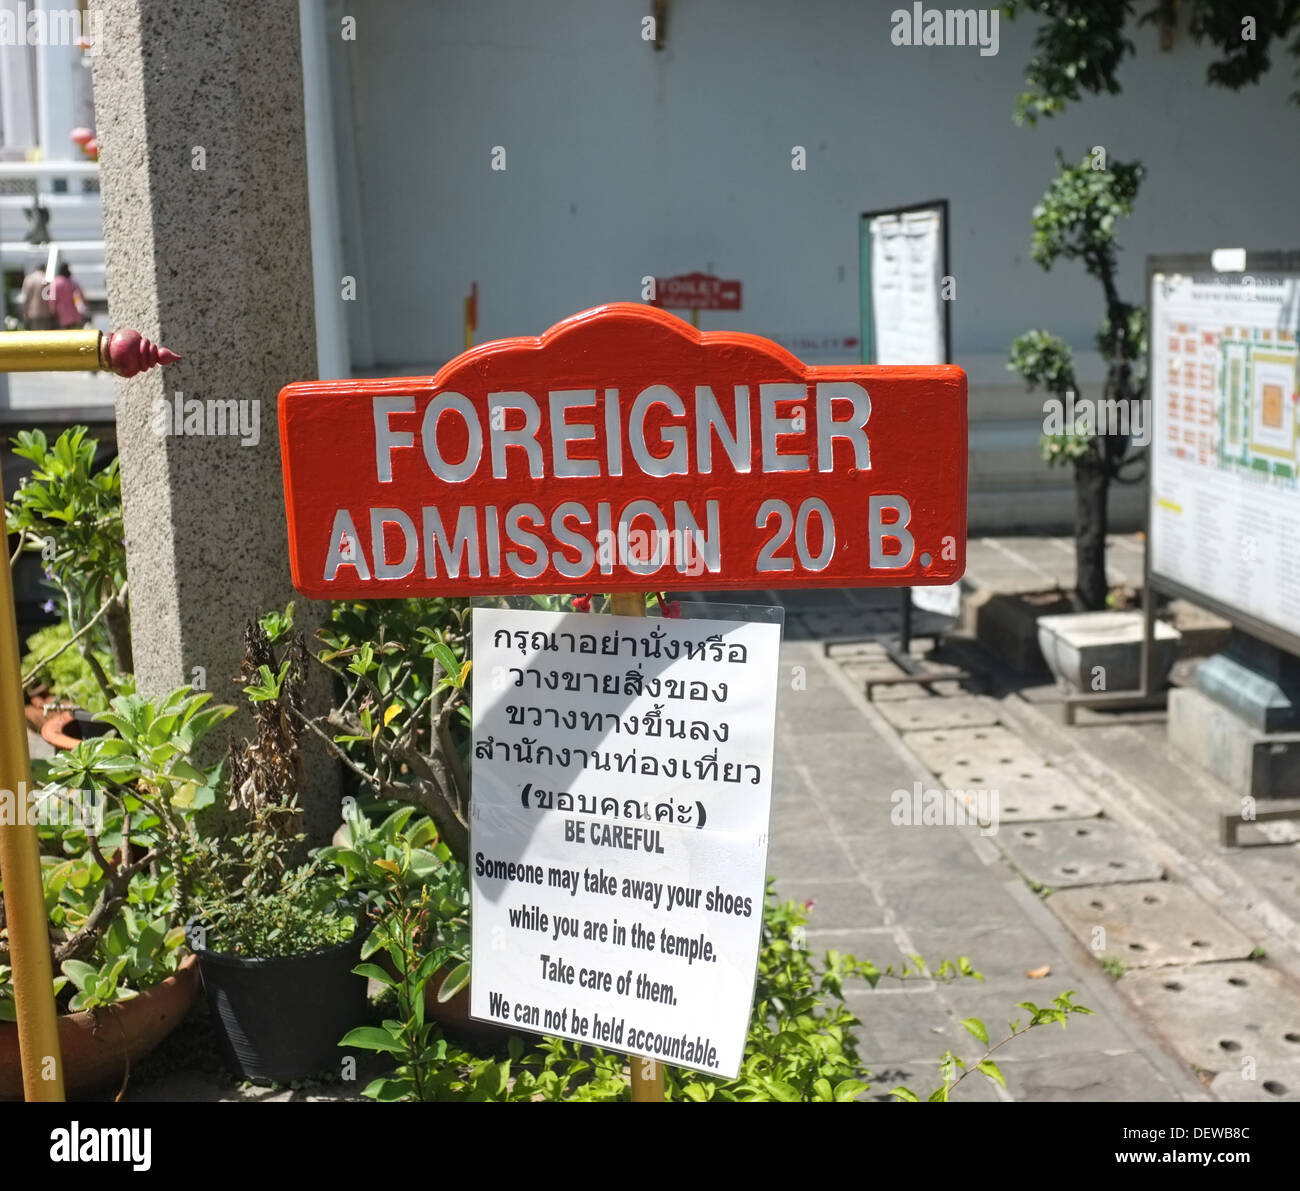 'Foreigner Admission' fee sign at Bangkok temple. - Stock Image